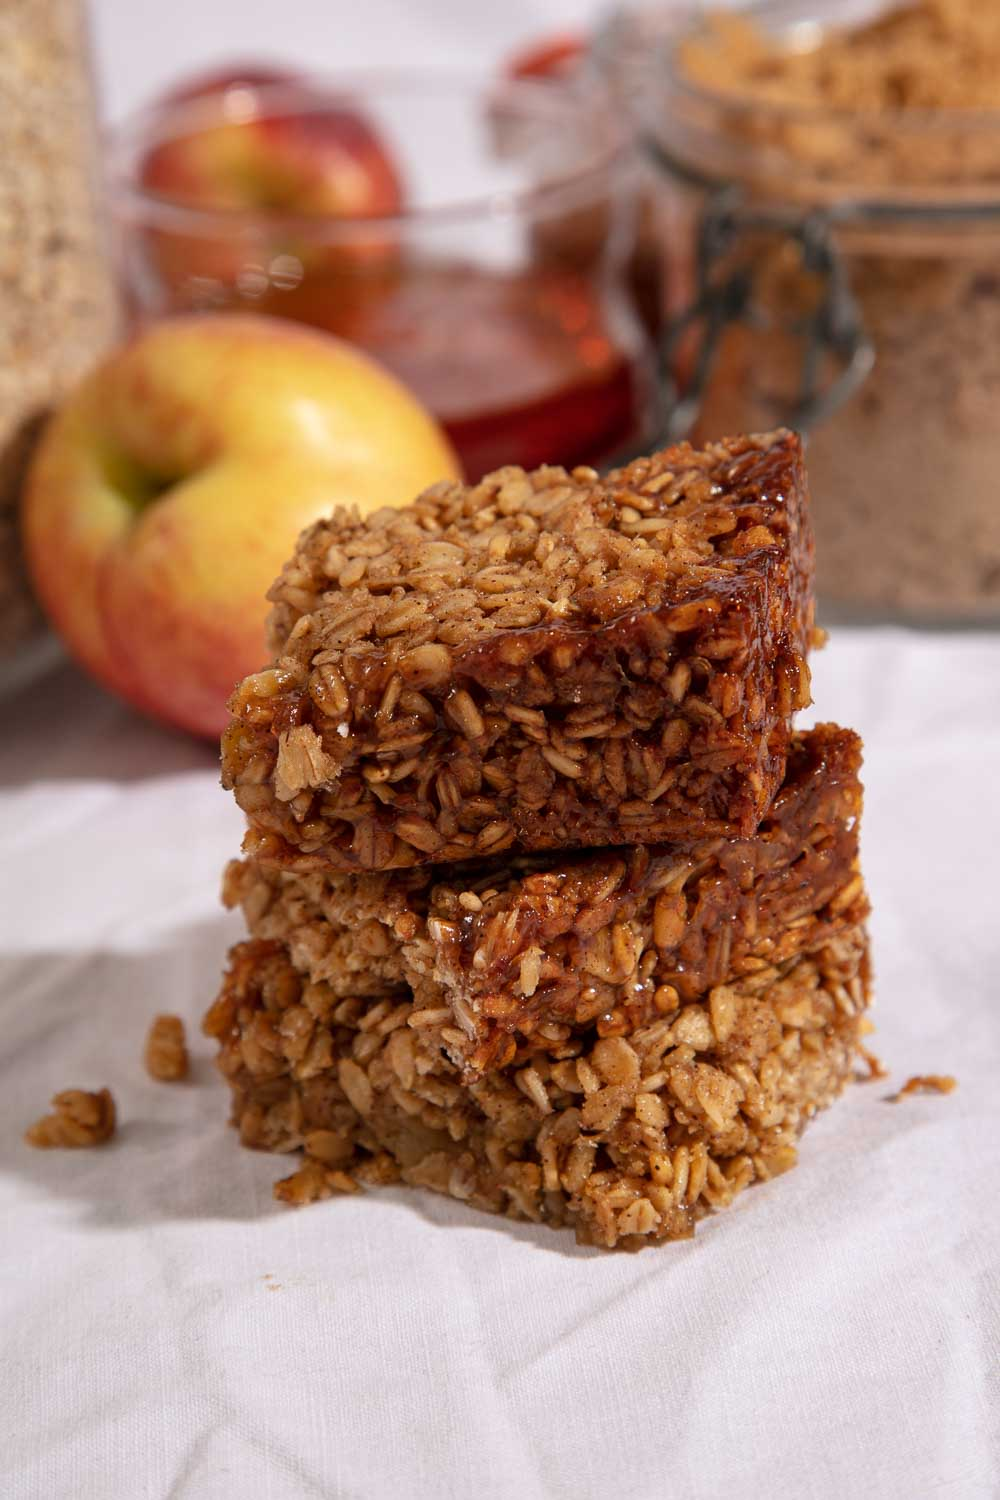 A stack of three slices of apple and cinnamon flapjack.